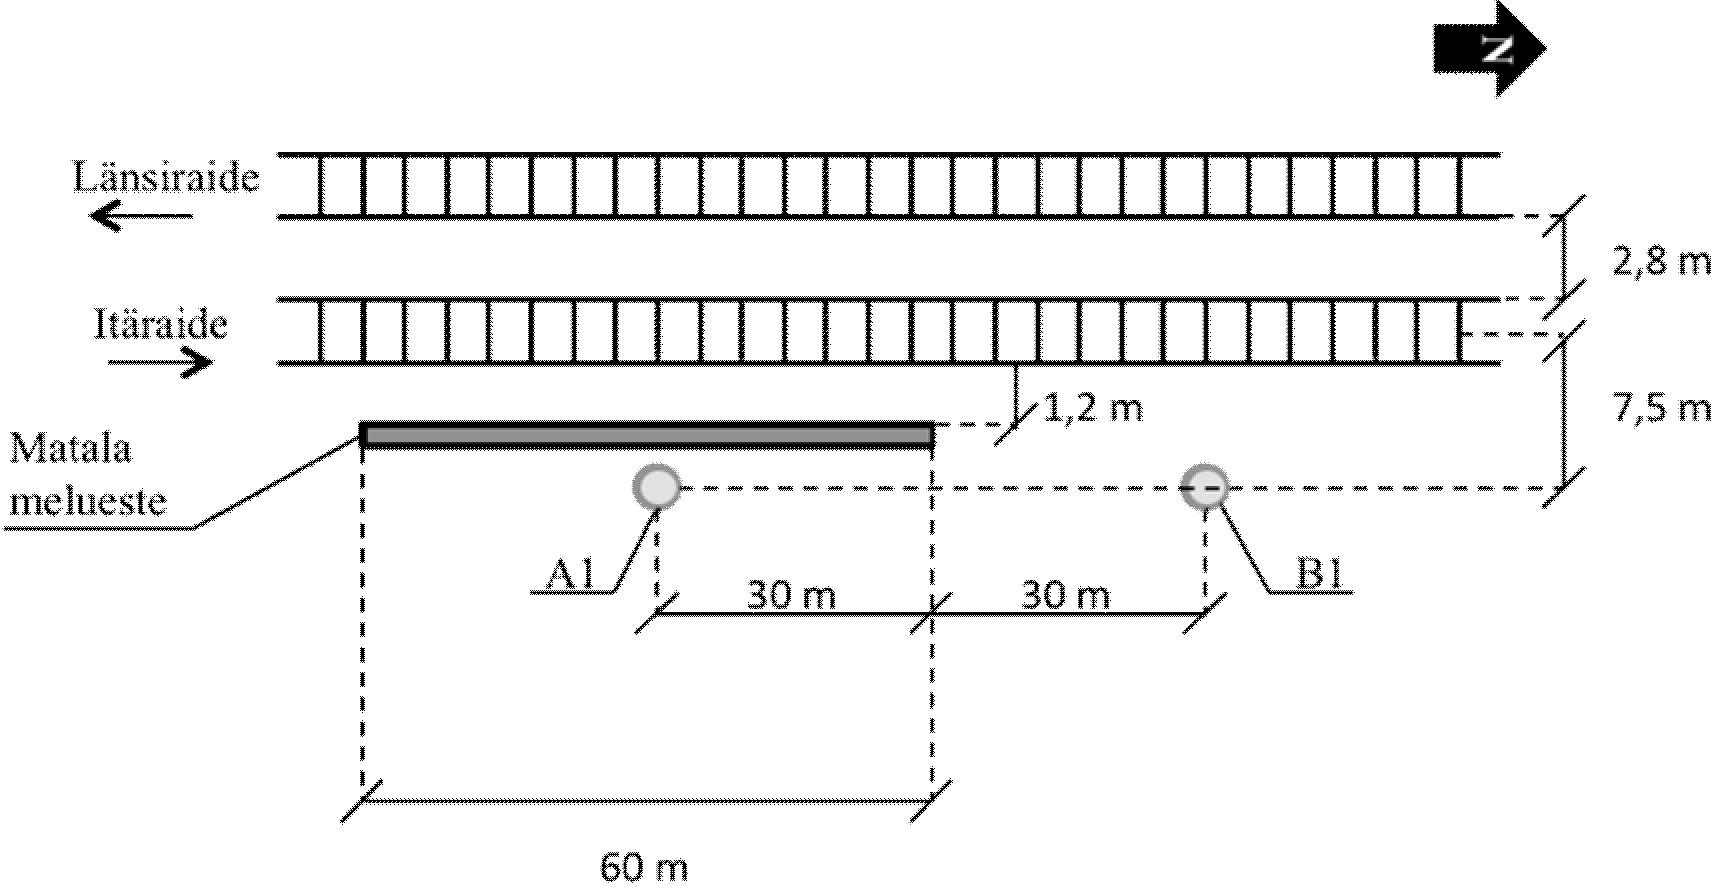 A1 in the processing of the results means the microphone placed at a 7,5m distance behind the barrier and B1 refers to the microphone placed at the same distance, but outside the barrier.